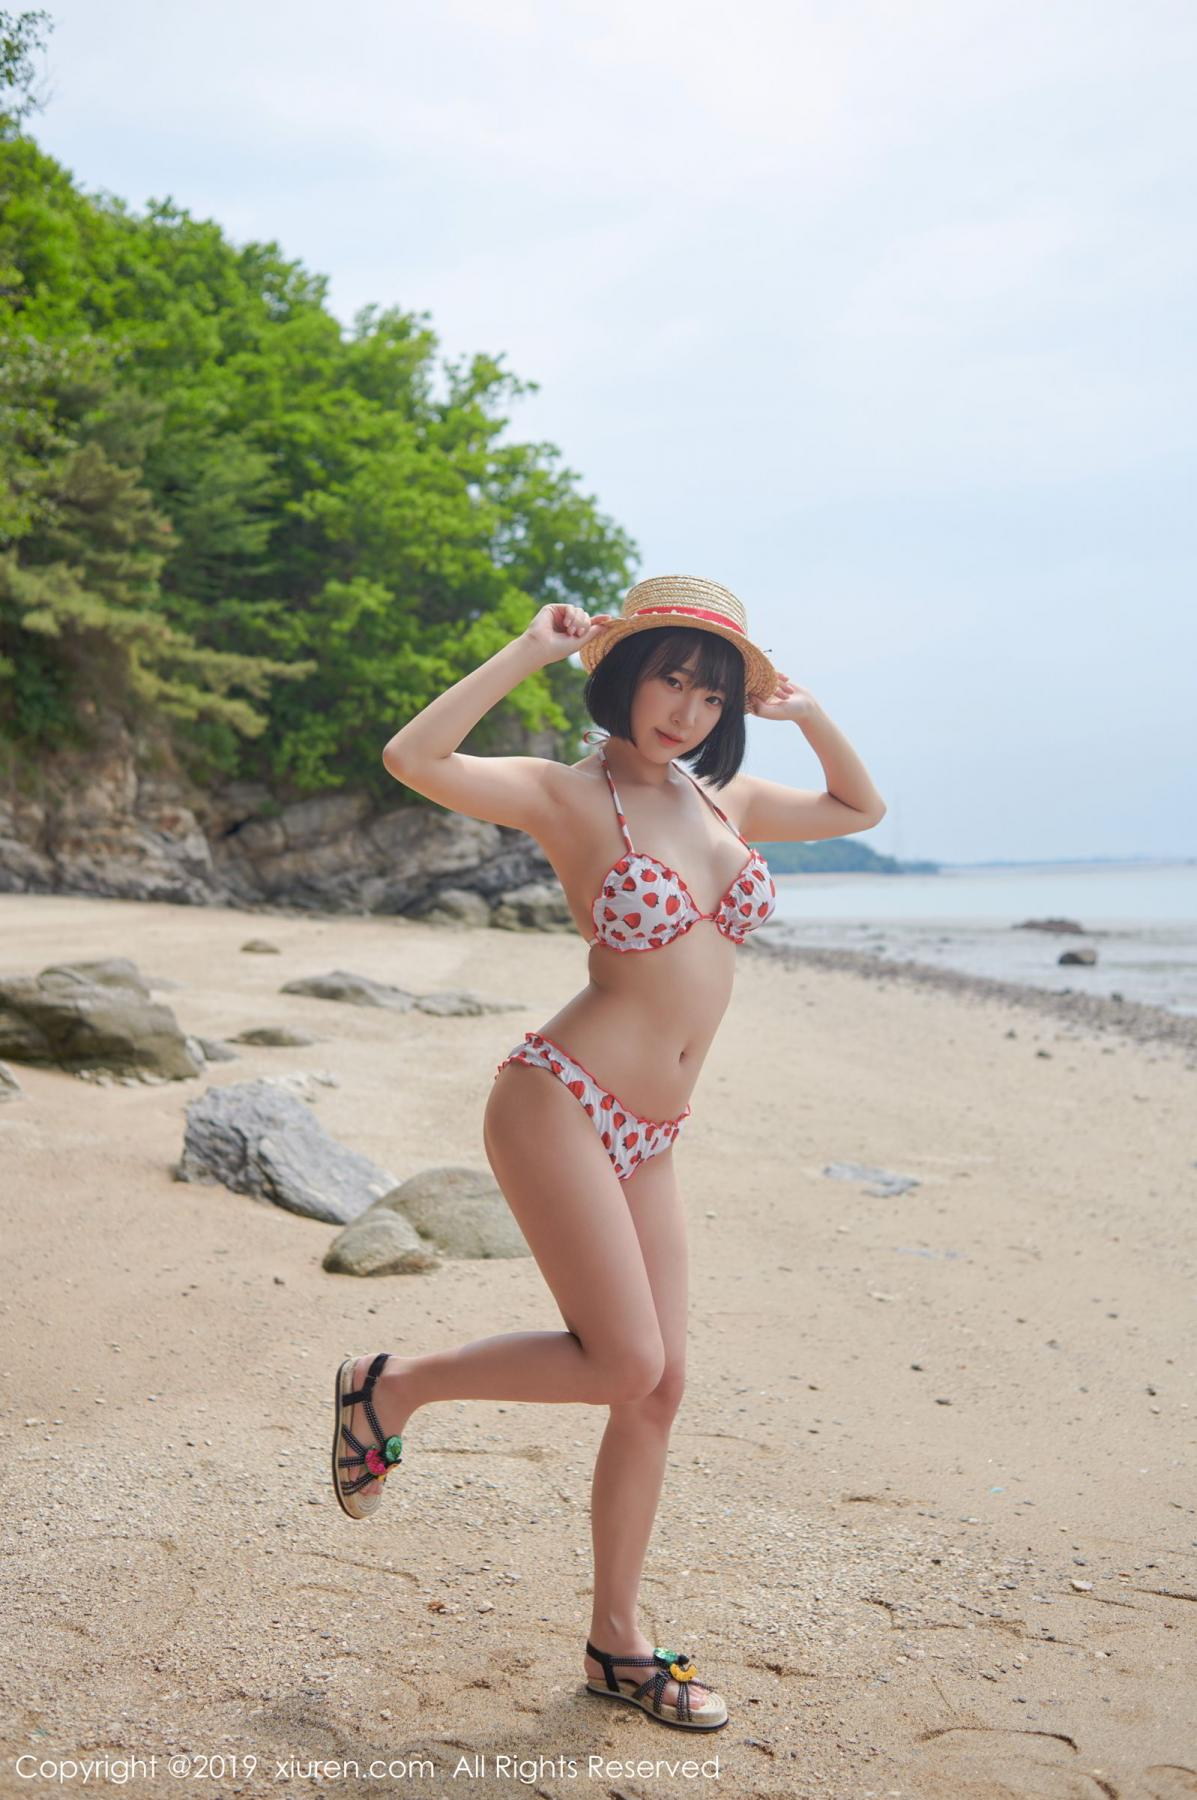 [XiuRen] Vol.1611 Model Qing Qing 4P, Beach, Bikini, Kang In Kyung, Xiuren